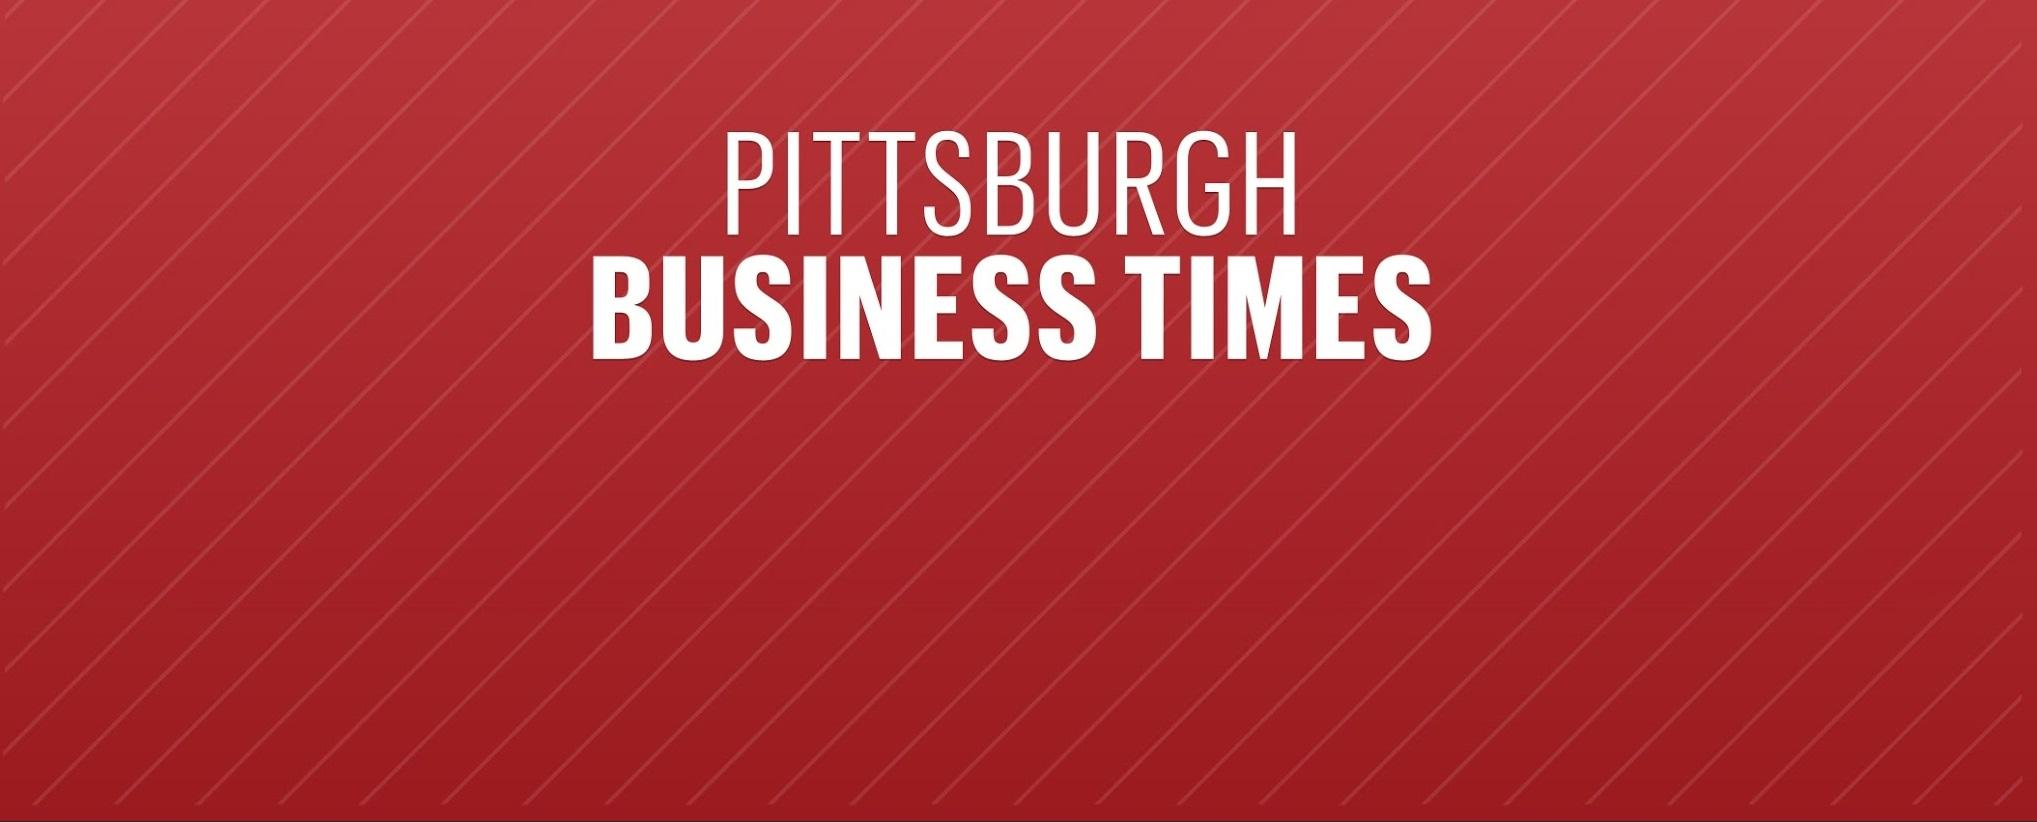 CEO Selected as a 2014 Diamond Award Winner by the Pittsburgh Business Times